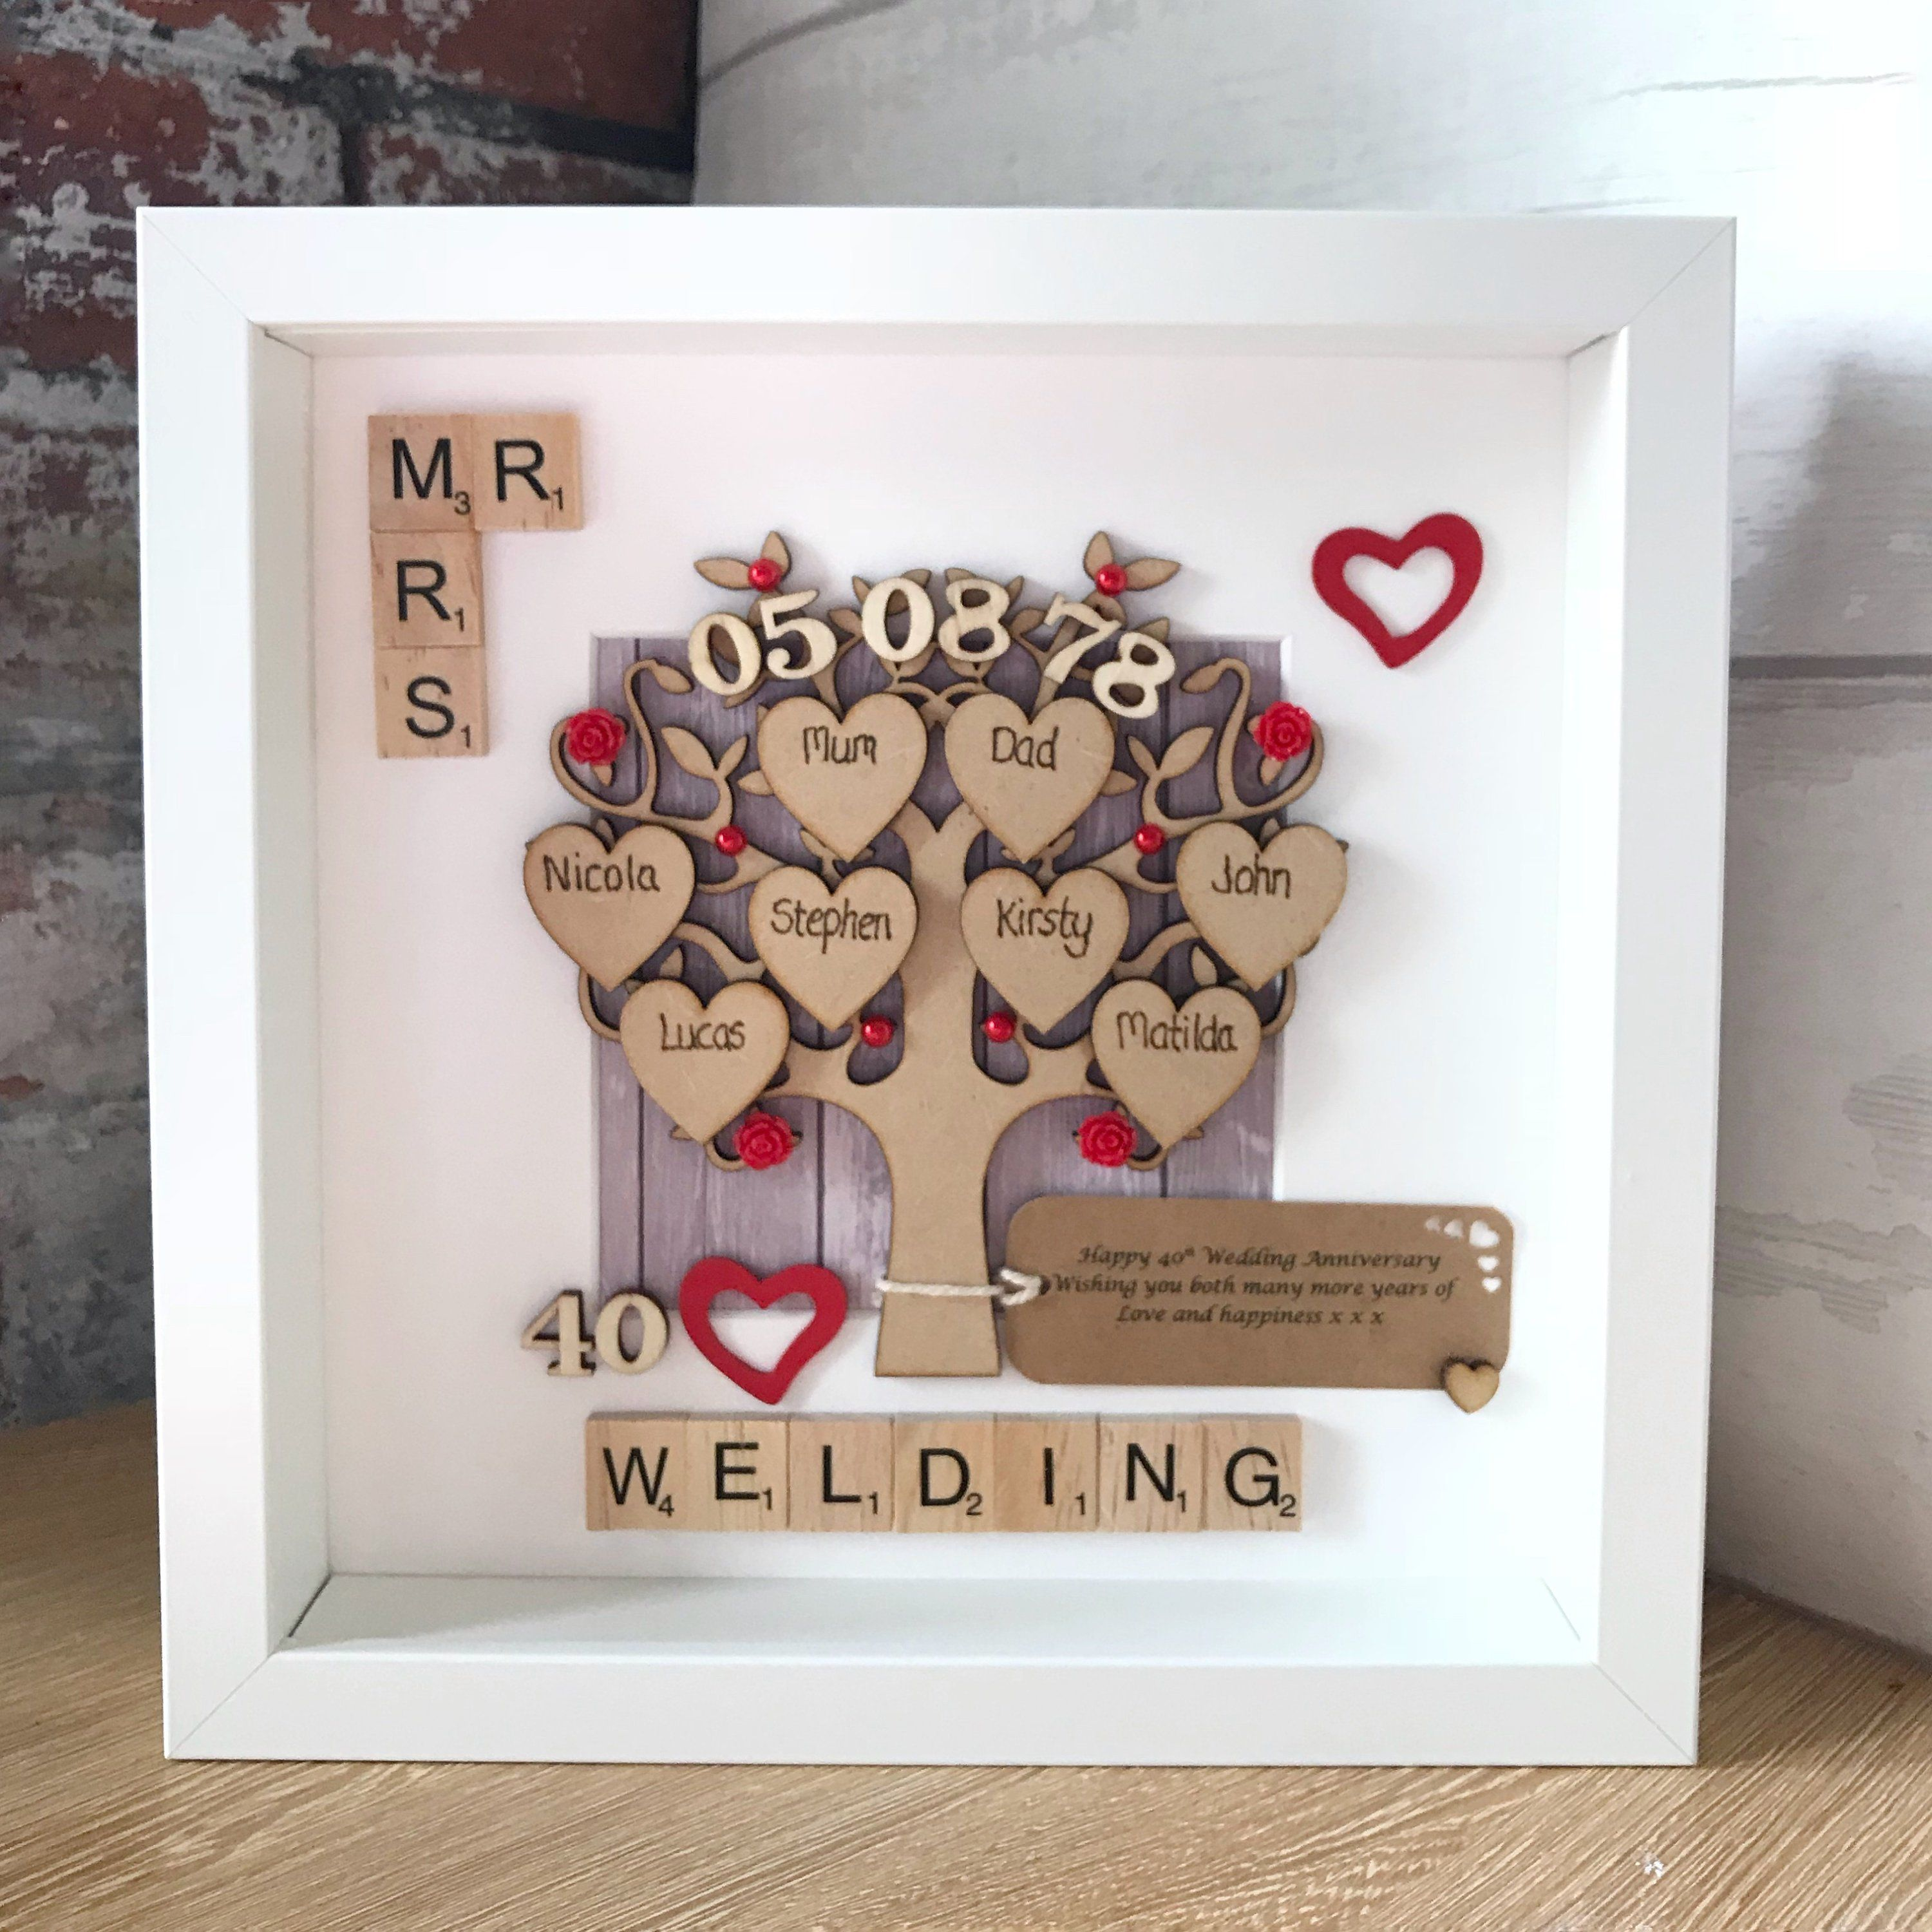 Ruby Wedding Anniversary Gift And Family Tree 40th Wedding Etsy Ruby Wedding Anniversary Gifts Wedding Anniversary Gifts Anniversary Gifts For Parents